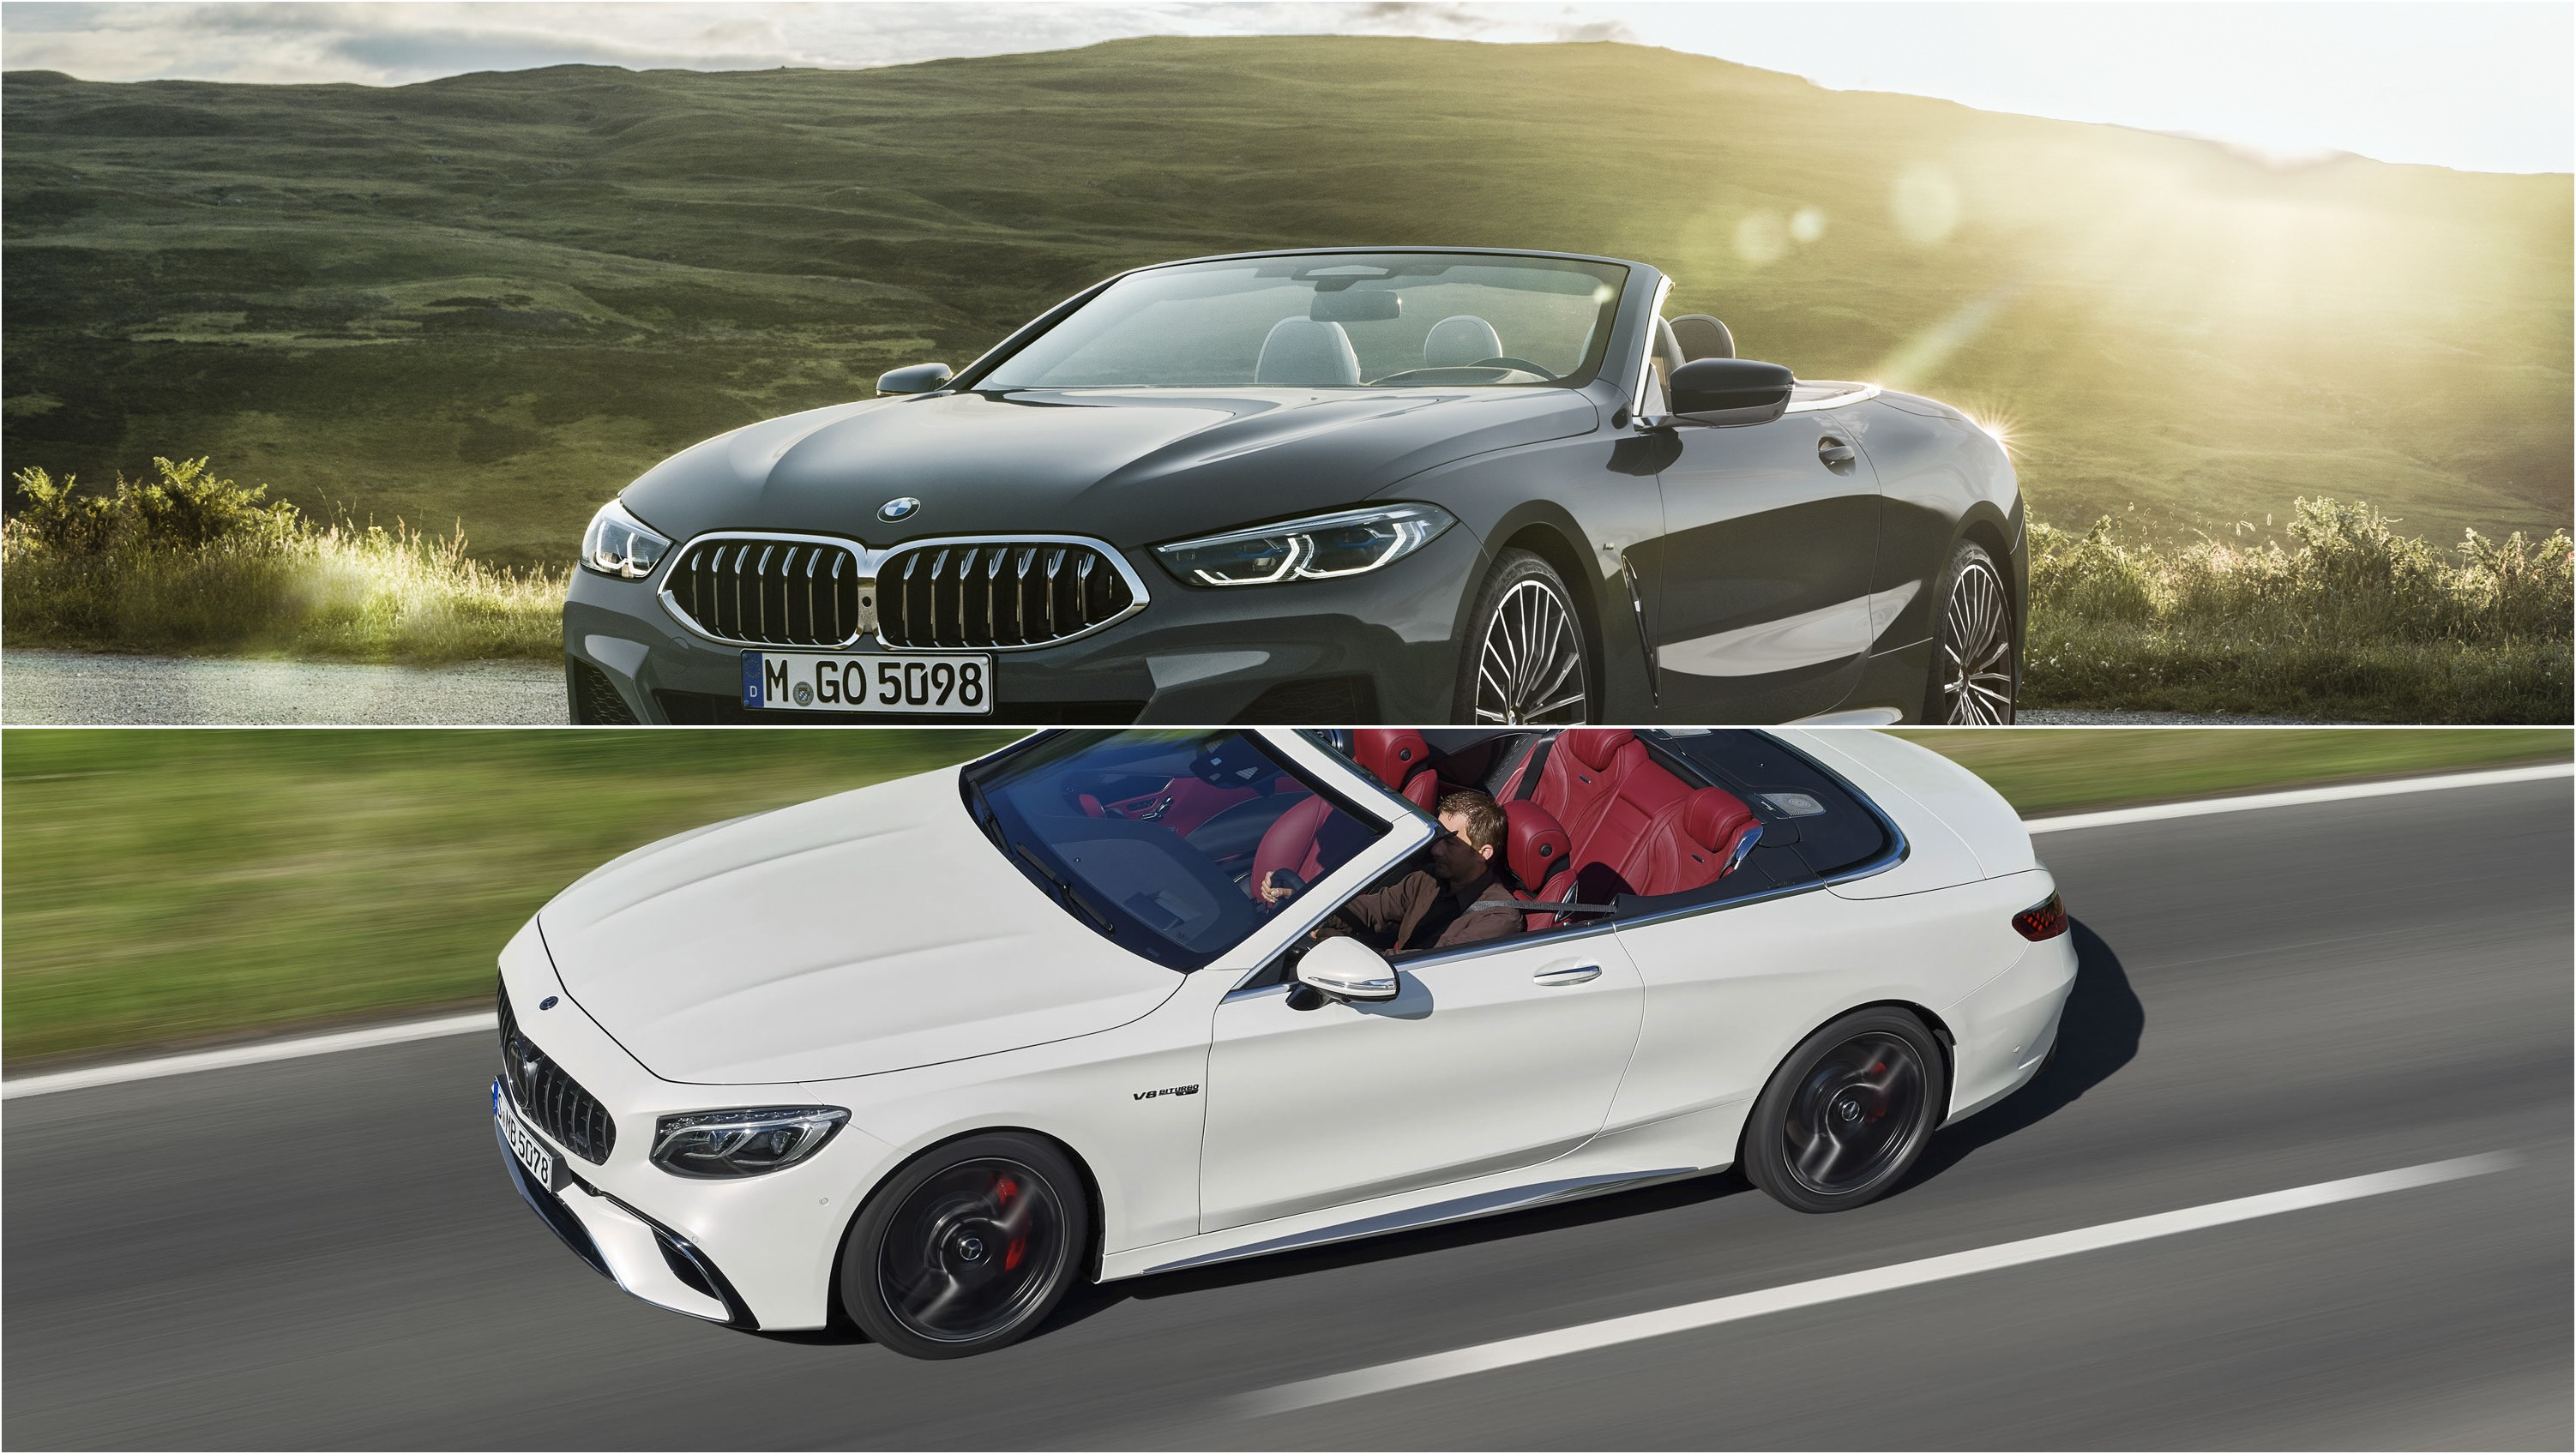 2019 Bmw 8 Series Convertible Vs 2019 Mercedes Amg S63 Cabriolet